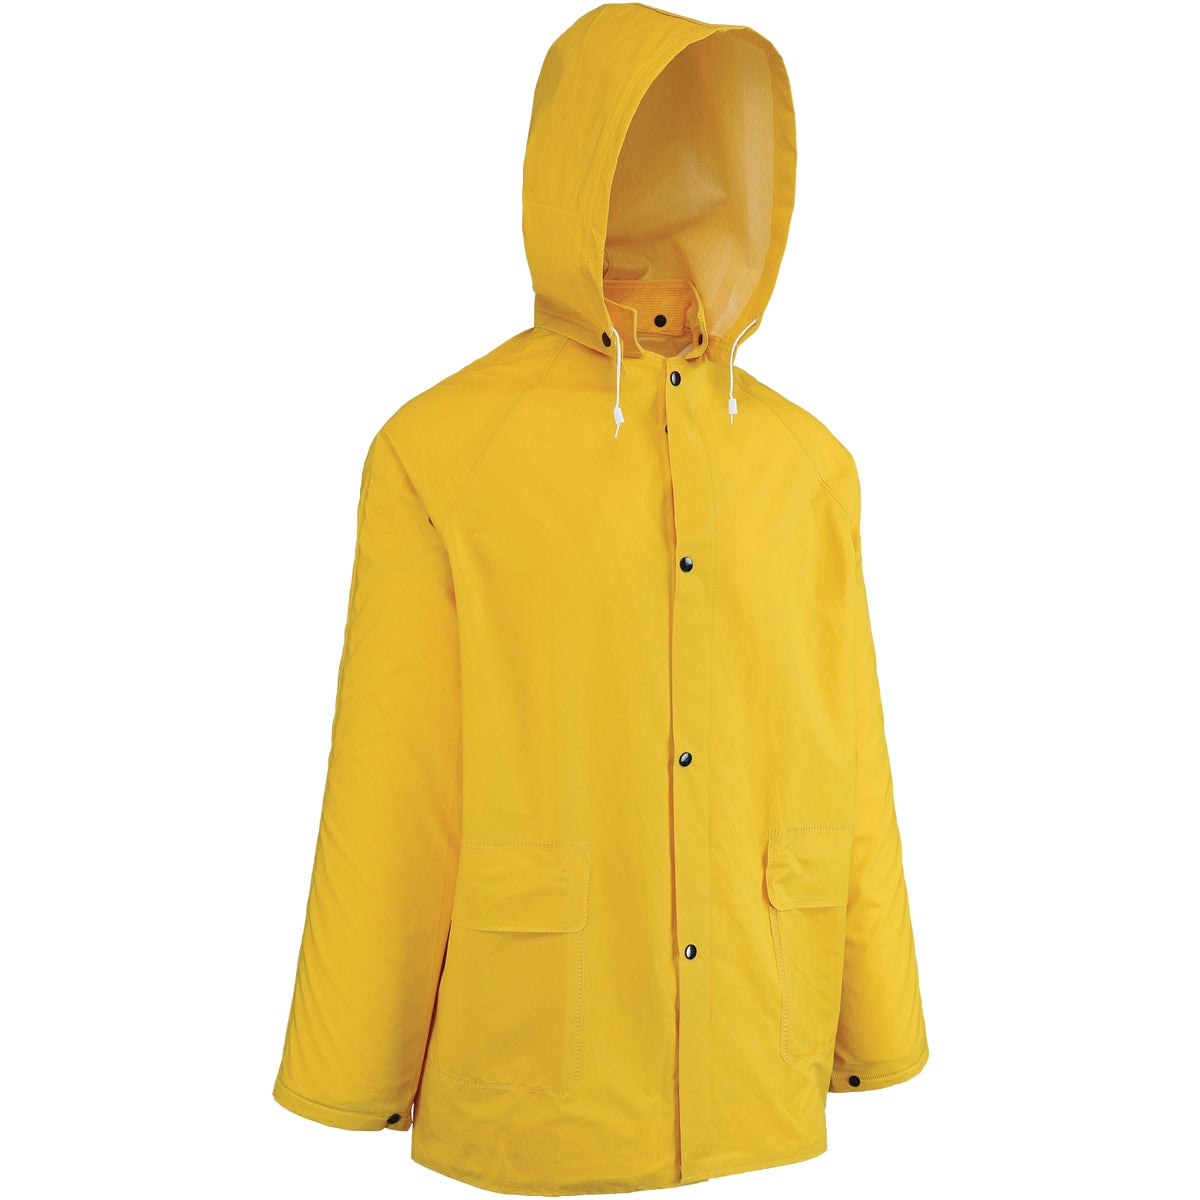 XL 2PC RAIN JACKET